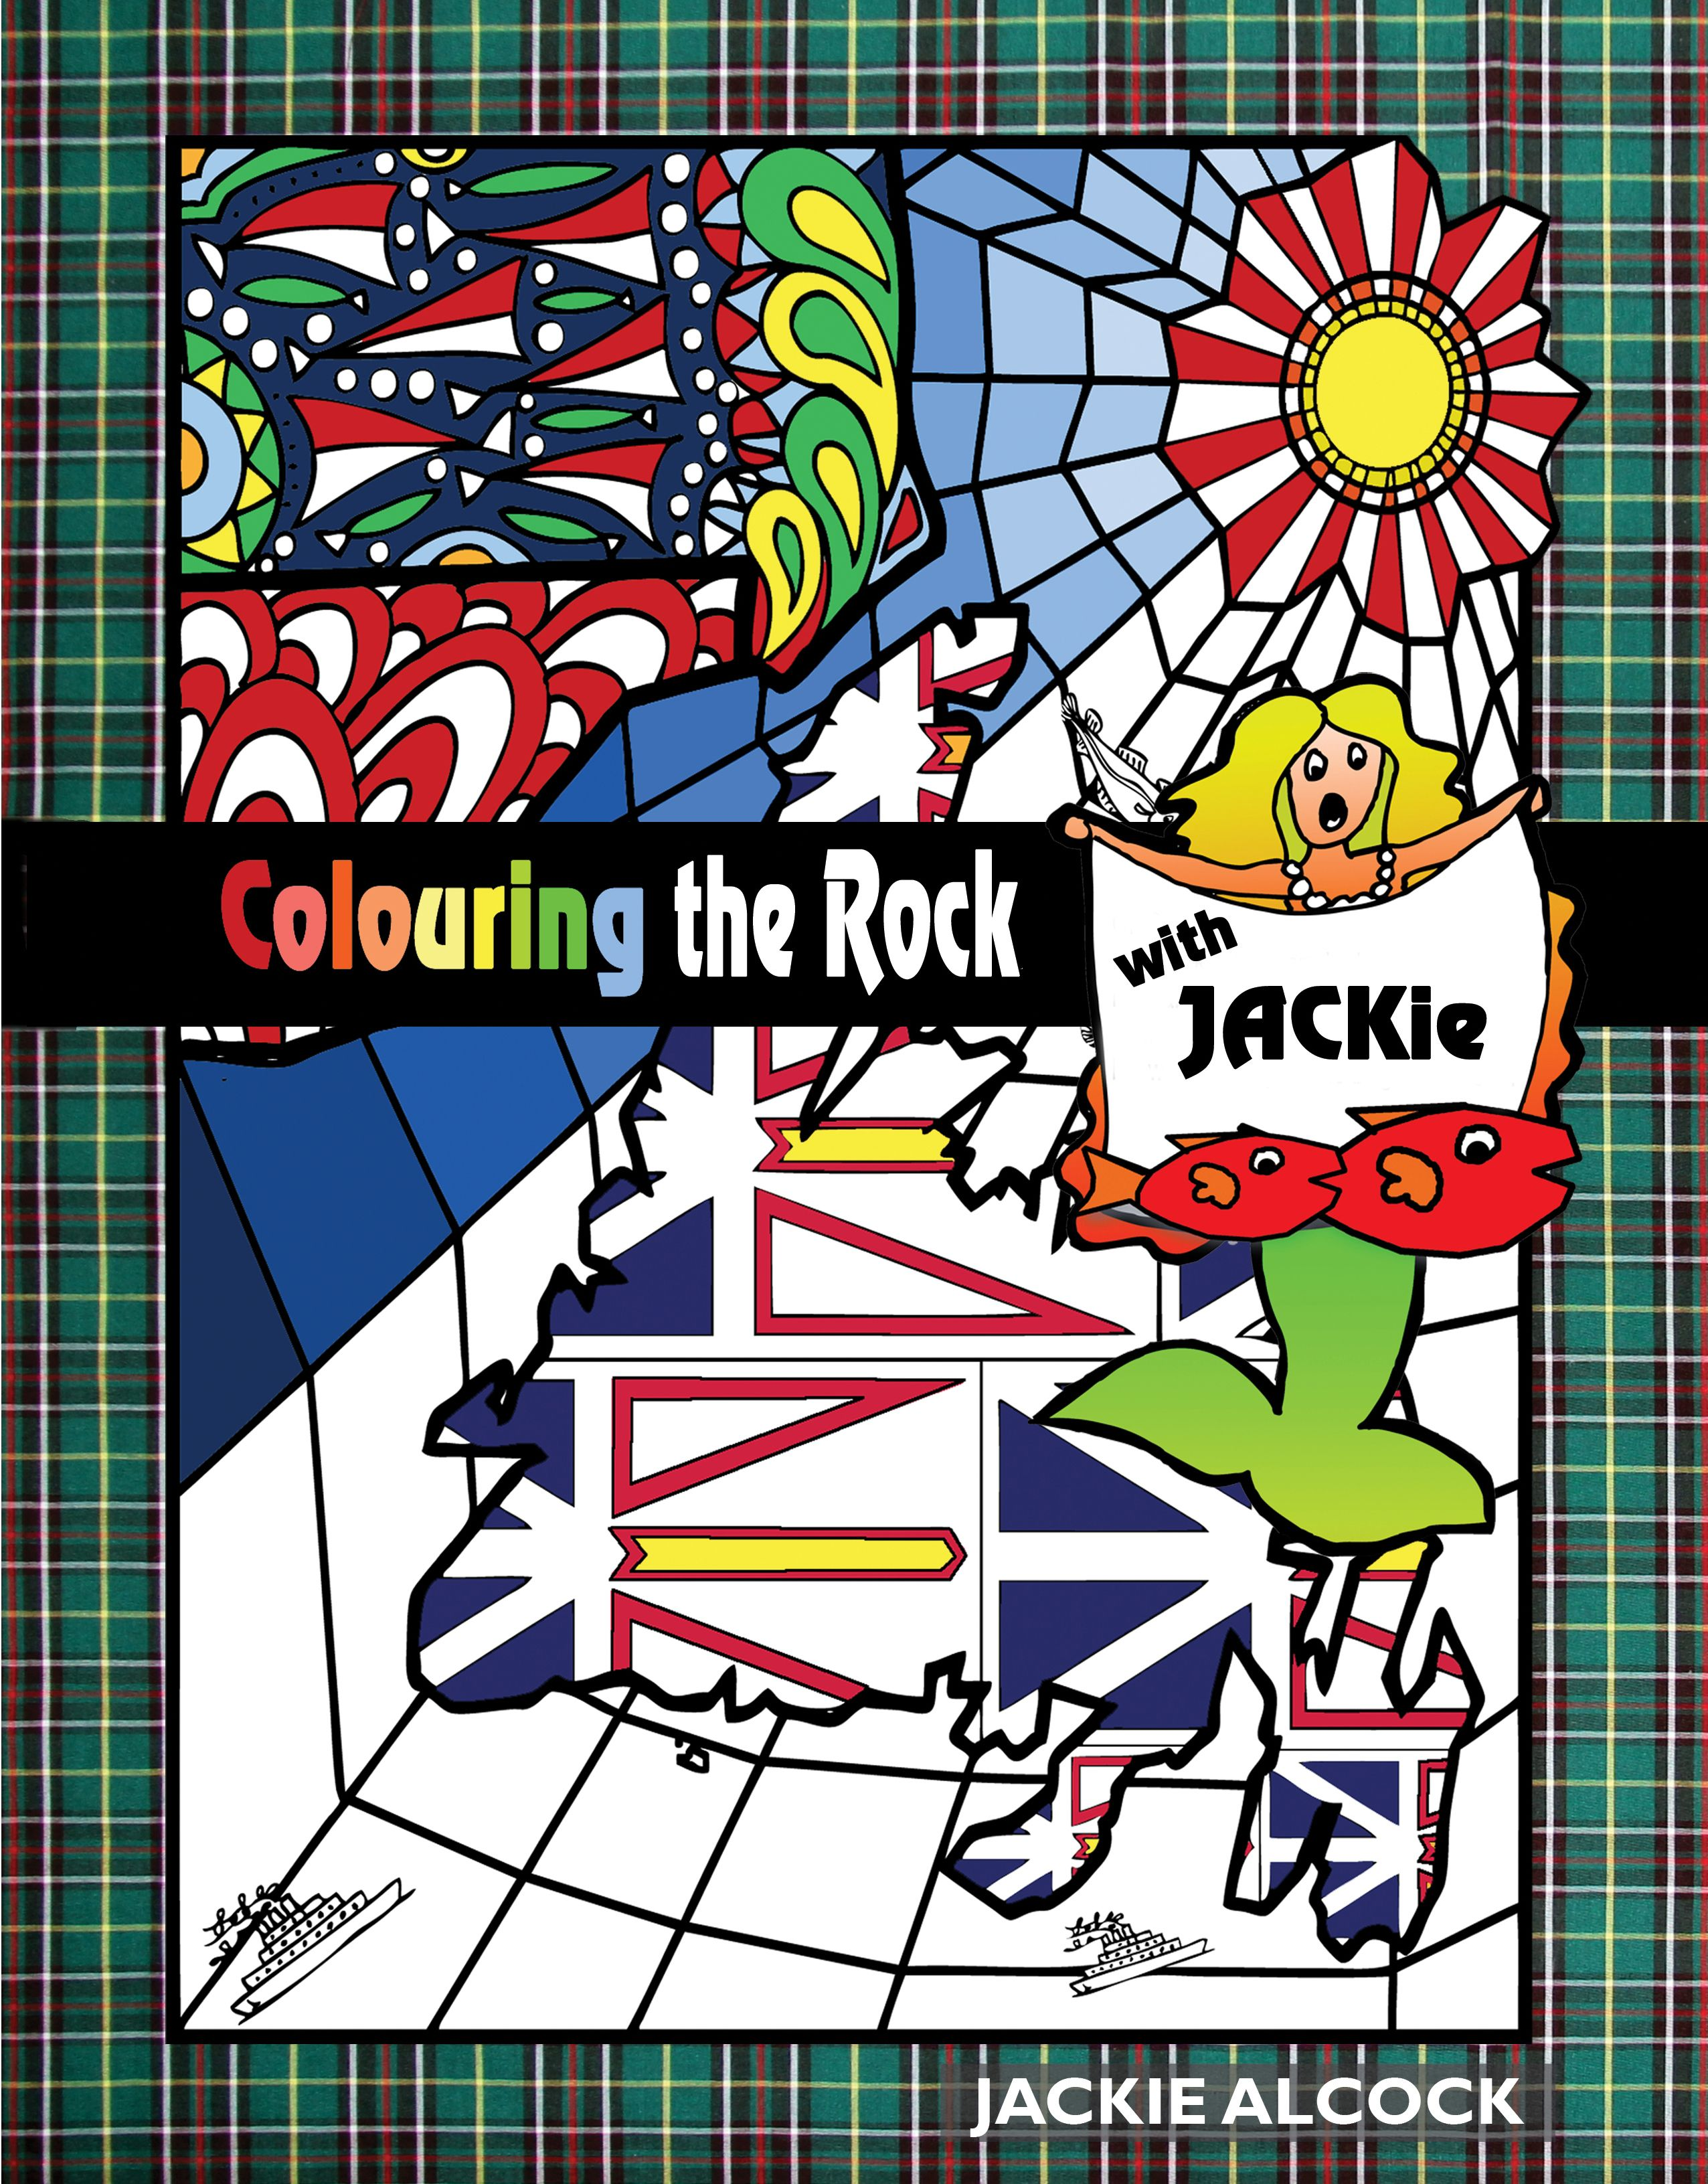 Colouring The Rock With Jackie Newfoundland And Labrador Colouring For Adults Jackie Alcock Bfa From Cor Sketch Book Newfoundland And Labrador Newfoundland